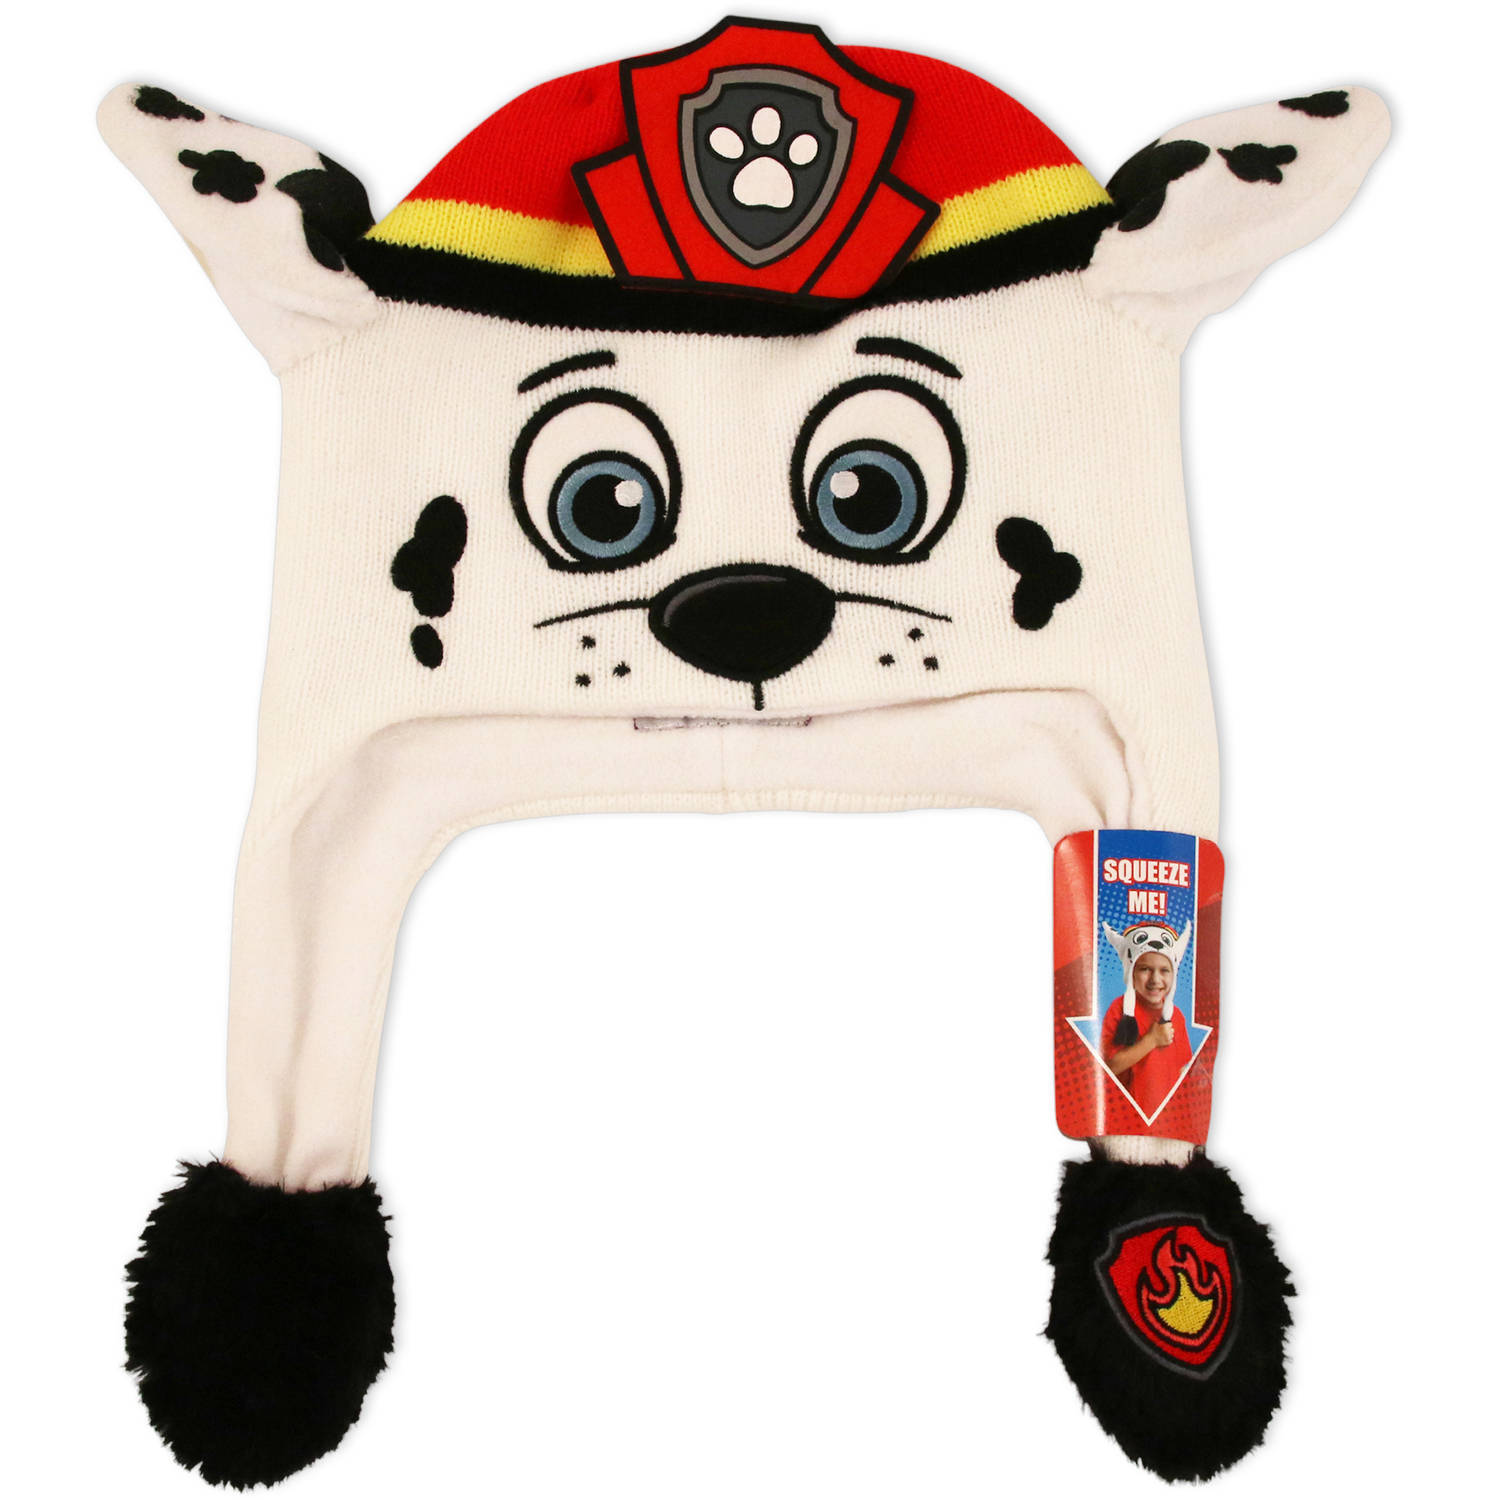 Nickelodeon Paw Patrol Marshall Flipeez action hat with movable ears.